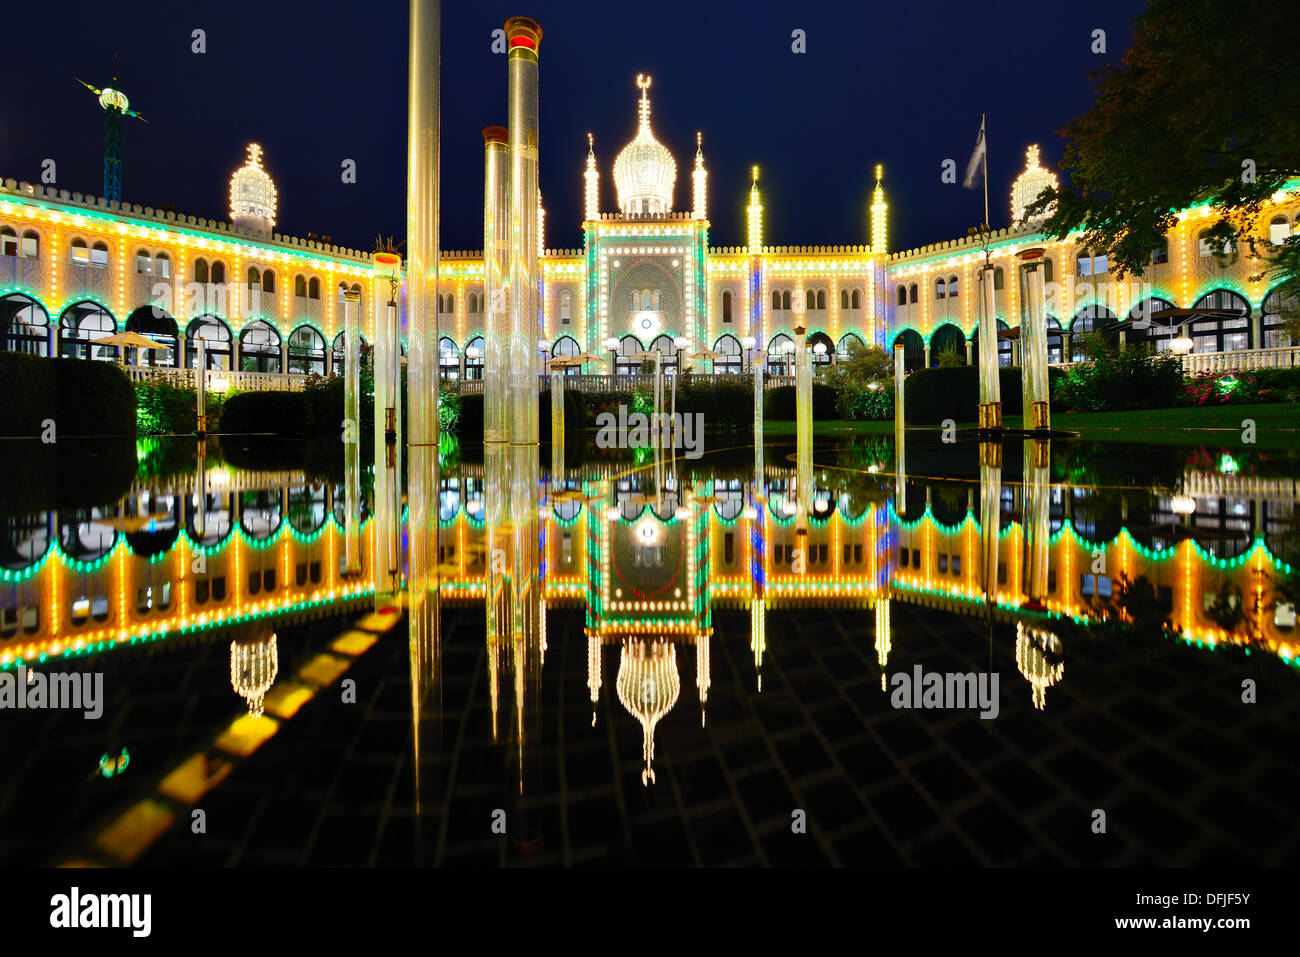 Moorish Theater in Copenhagen, Denmark. - Stock Image